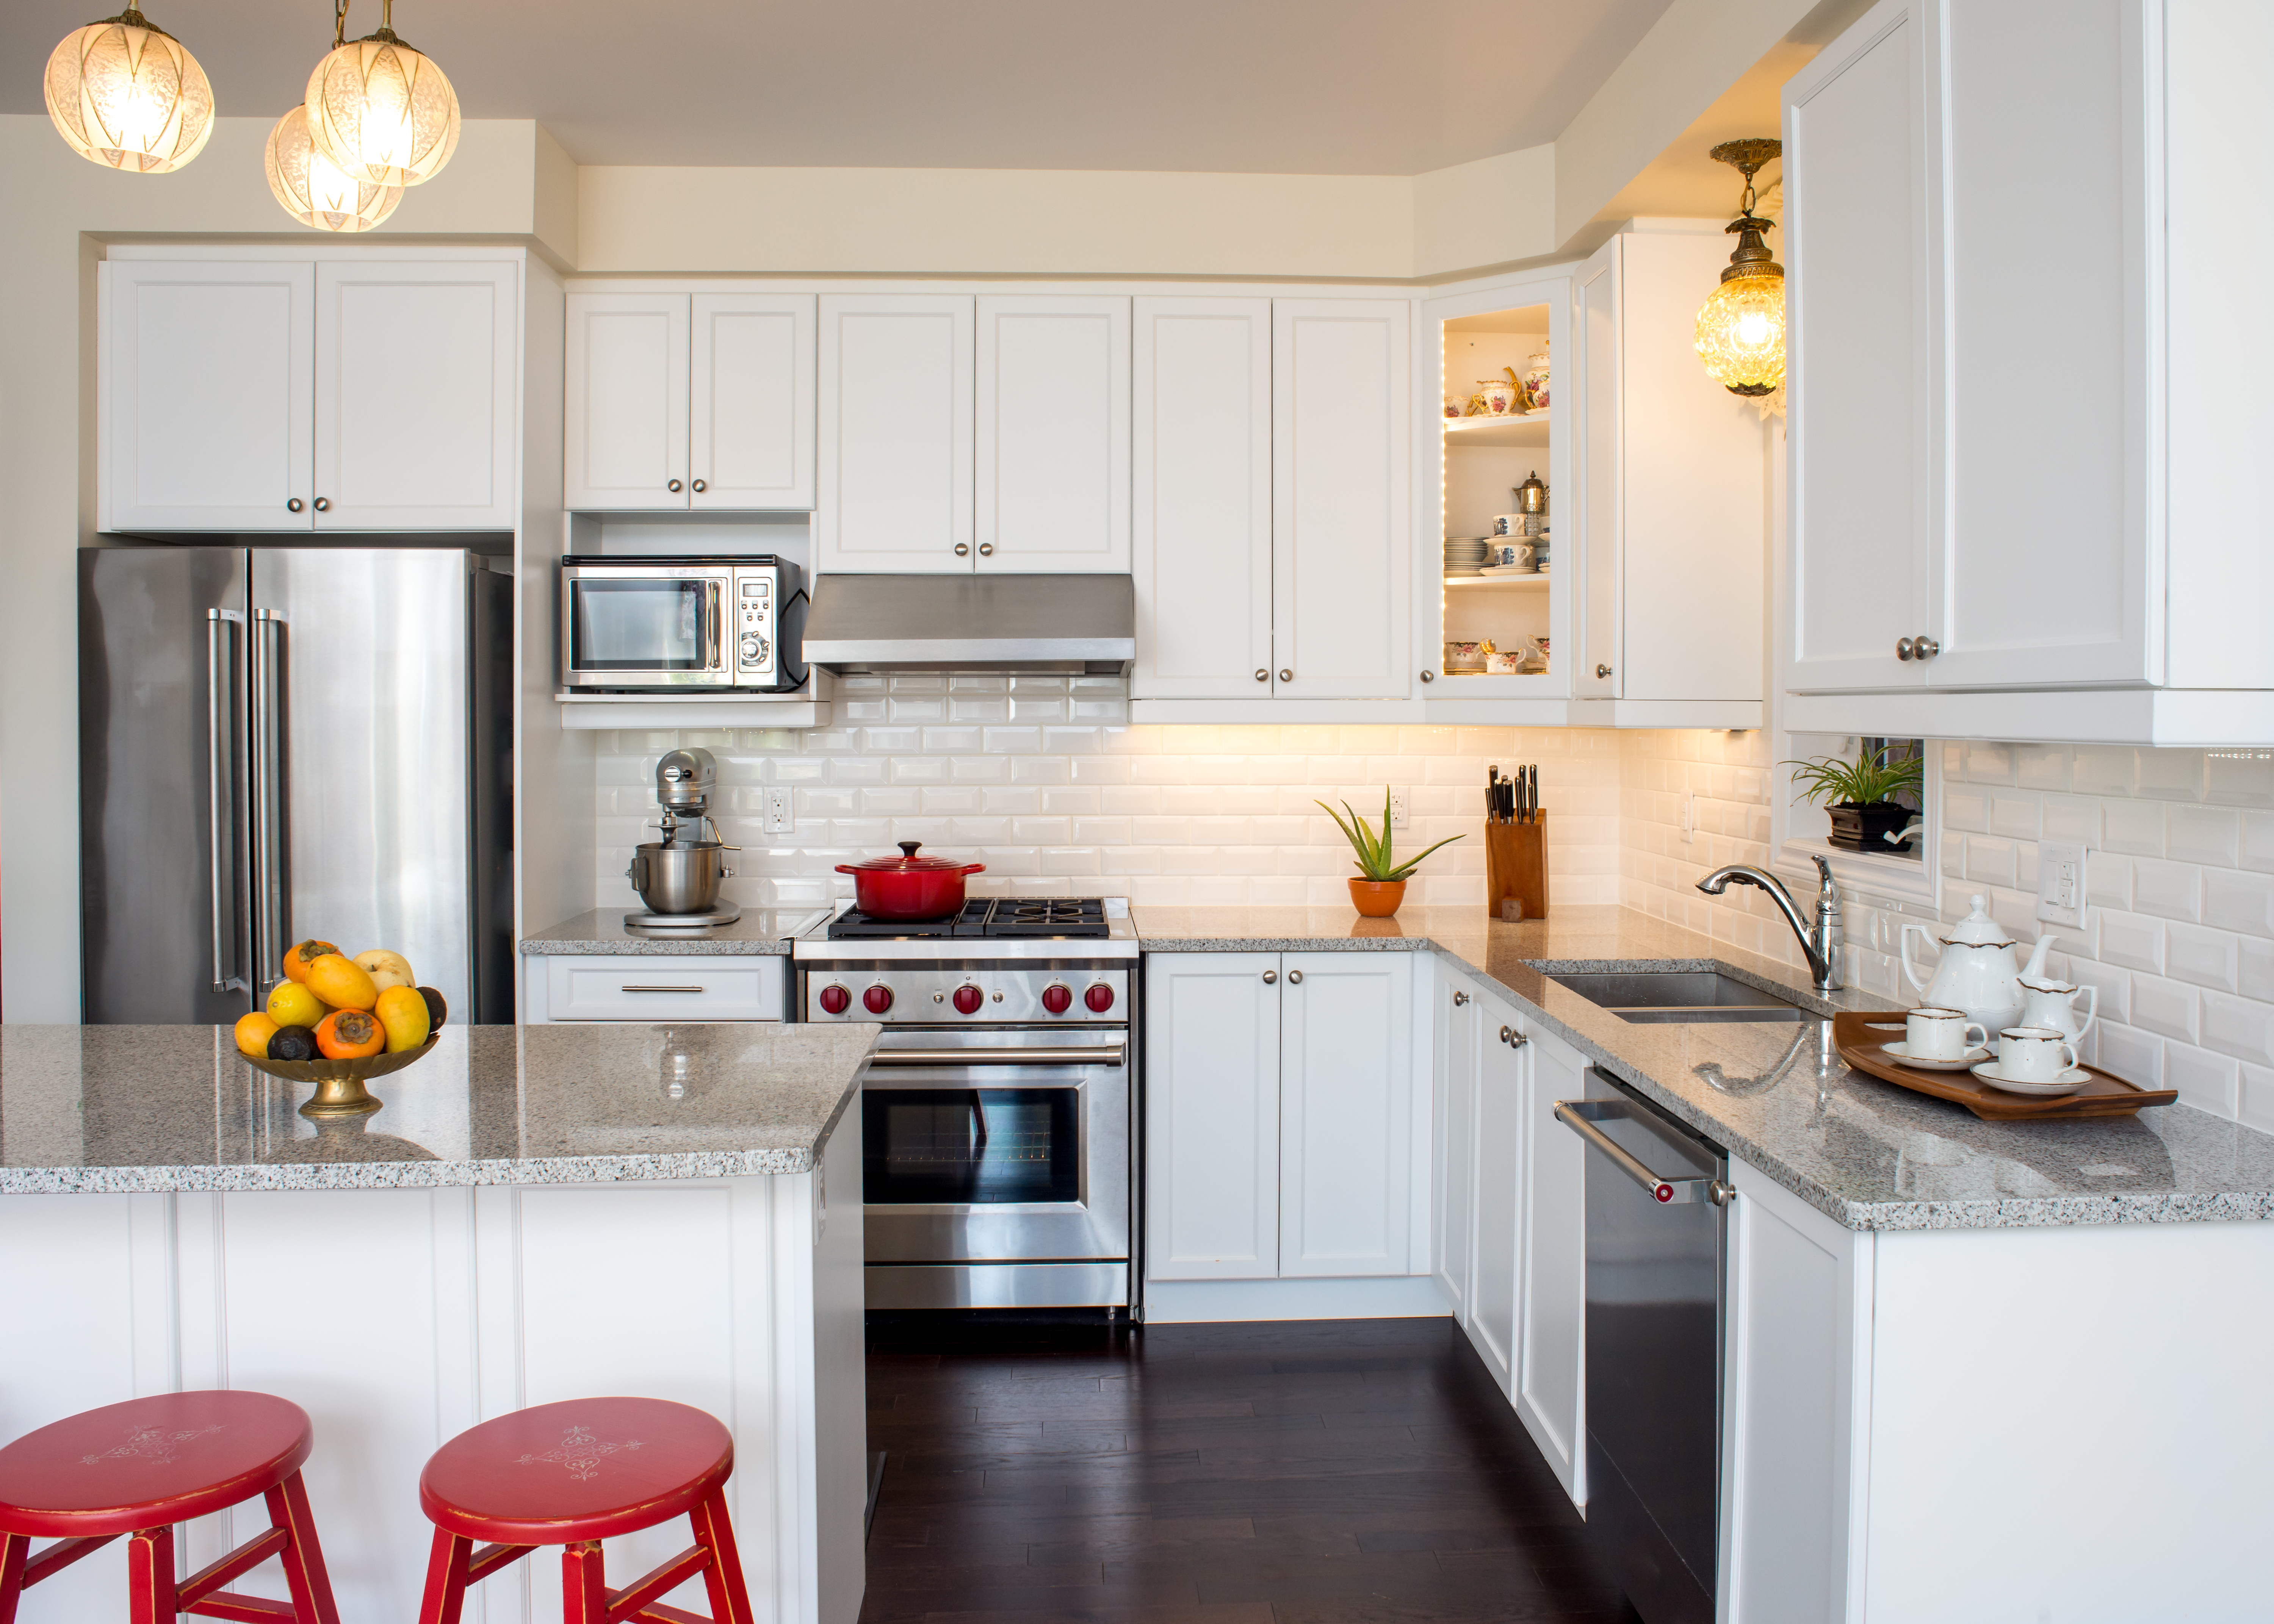 white kitchen with red accents and red stools